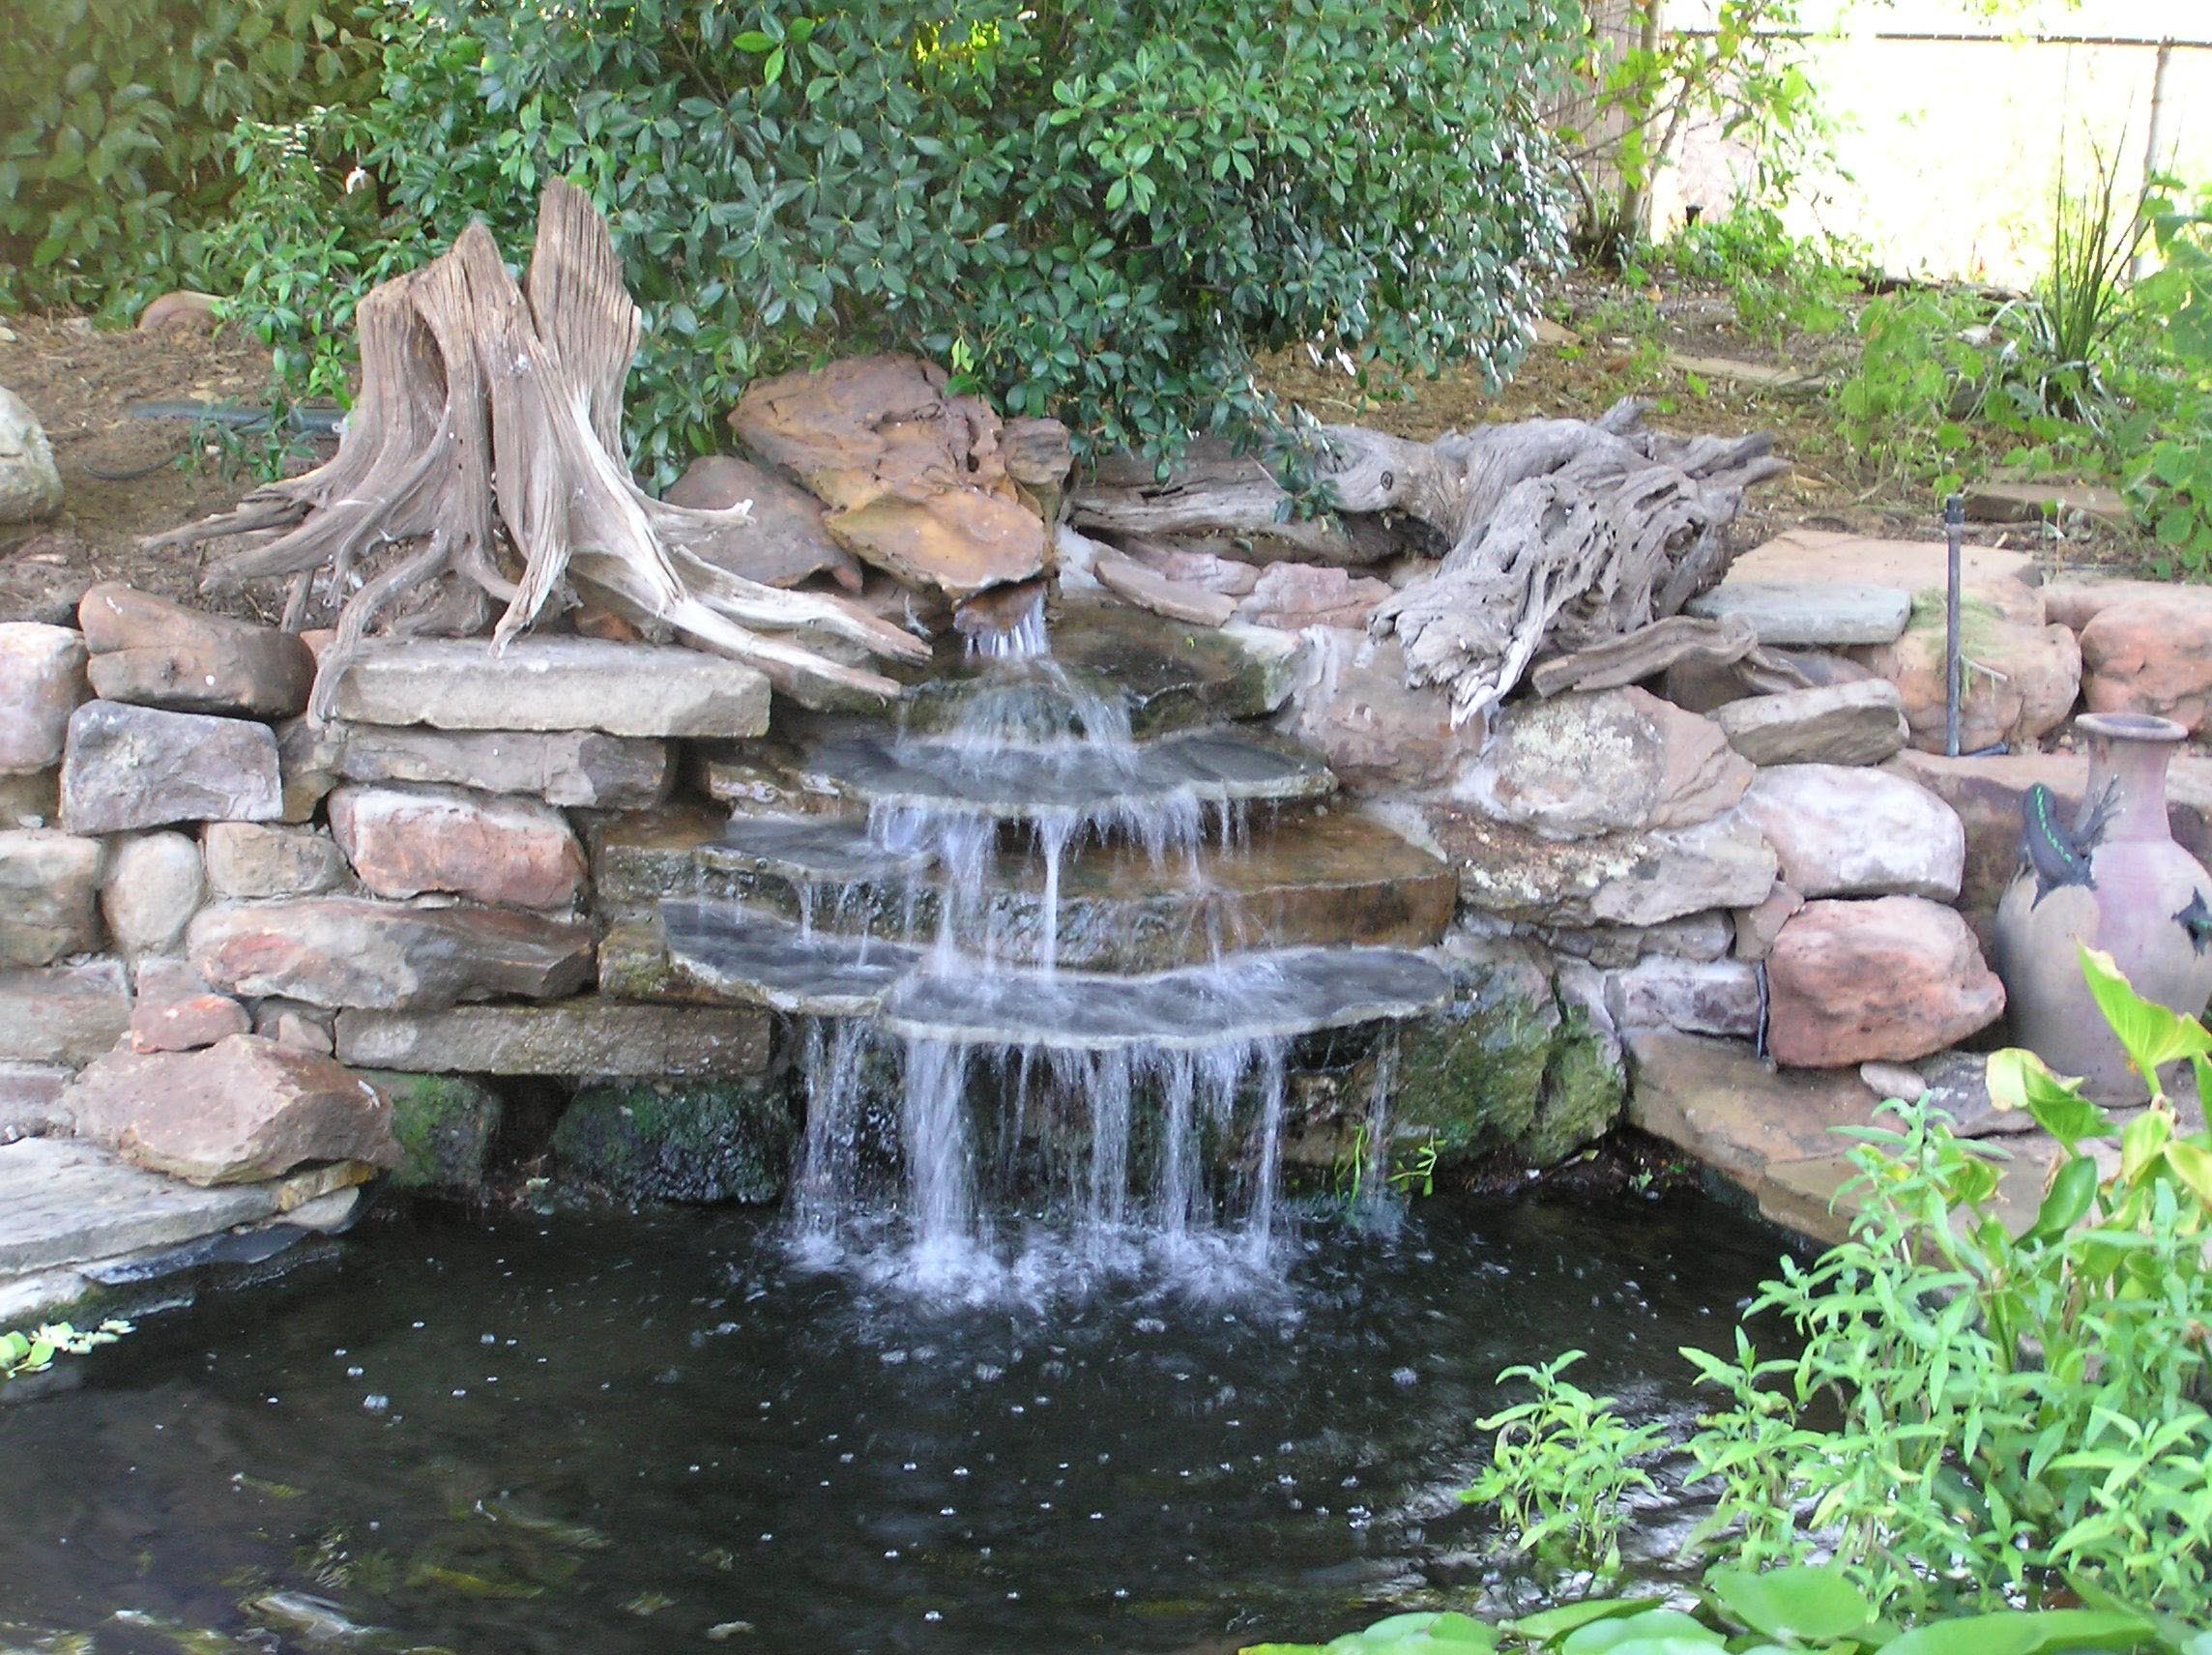 Garden pond waterfall designs backyard design ideas Backyard pond ideas with waterfall